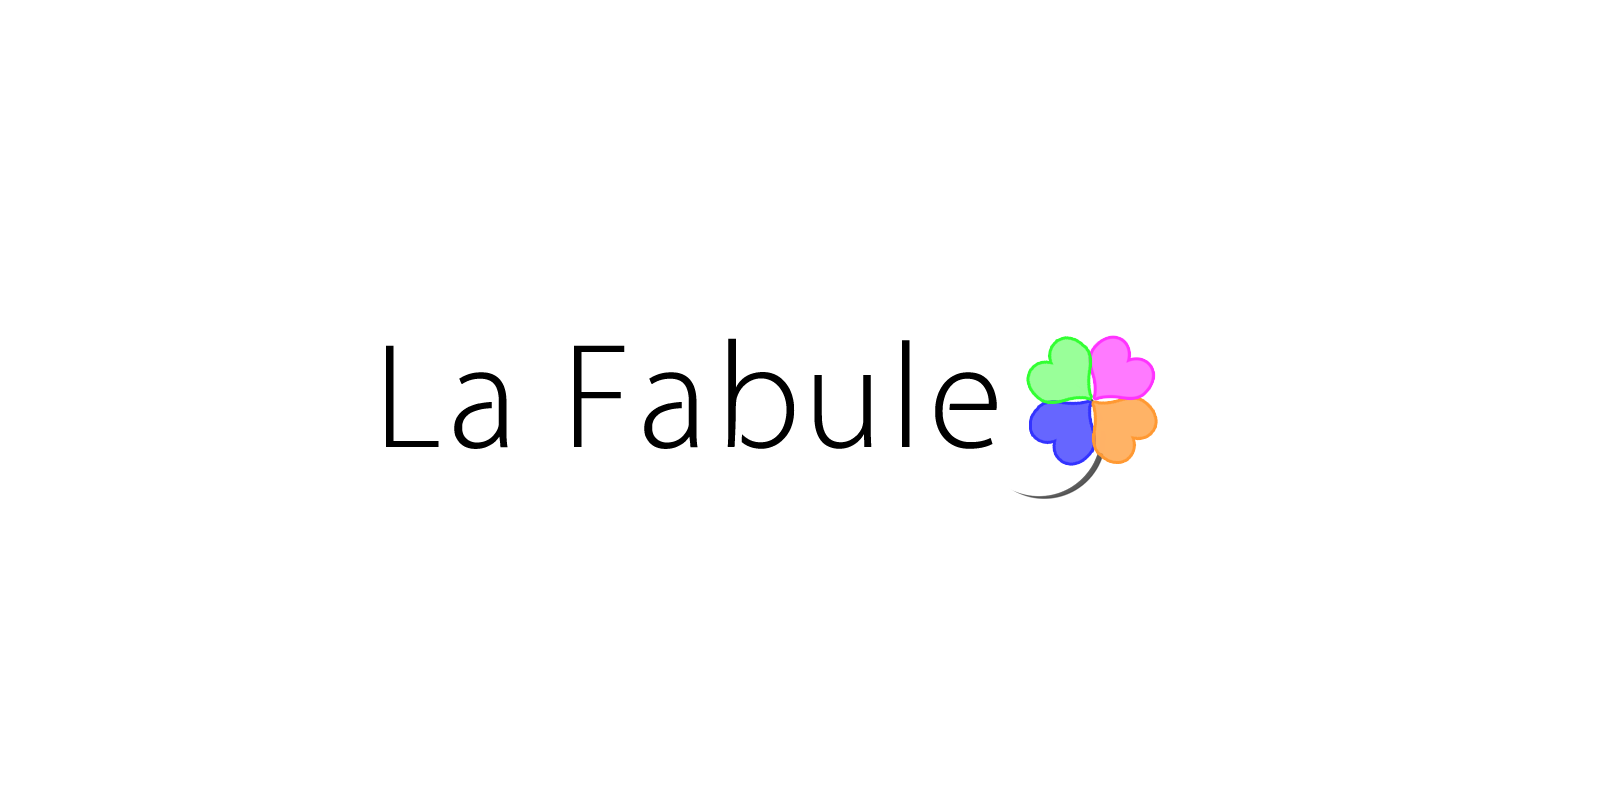 Quatrefoil design for the La Fabule logo.